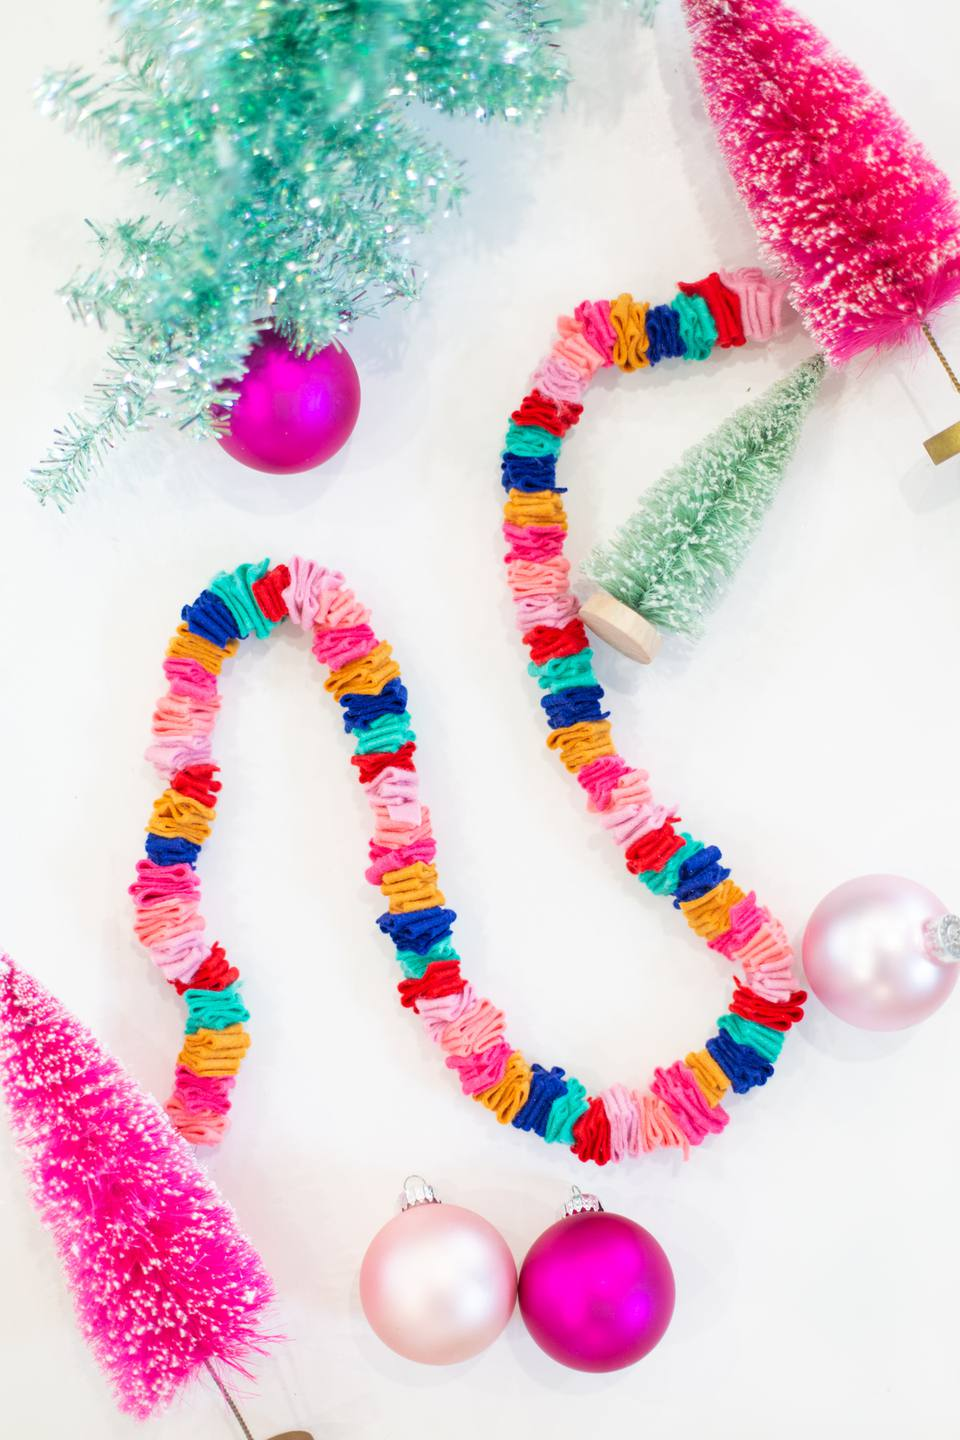 How to make a DIY Christmas garland